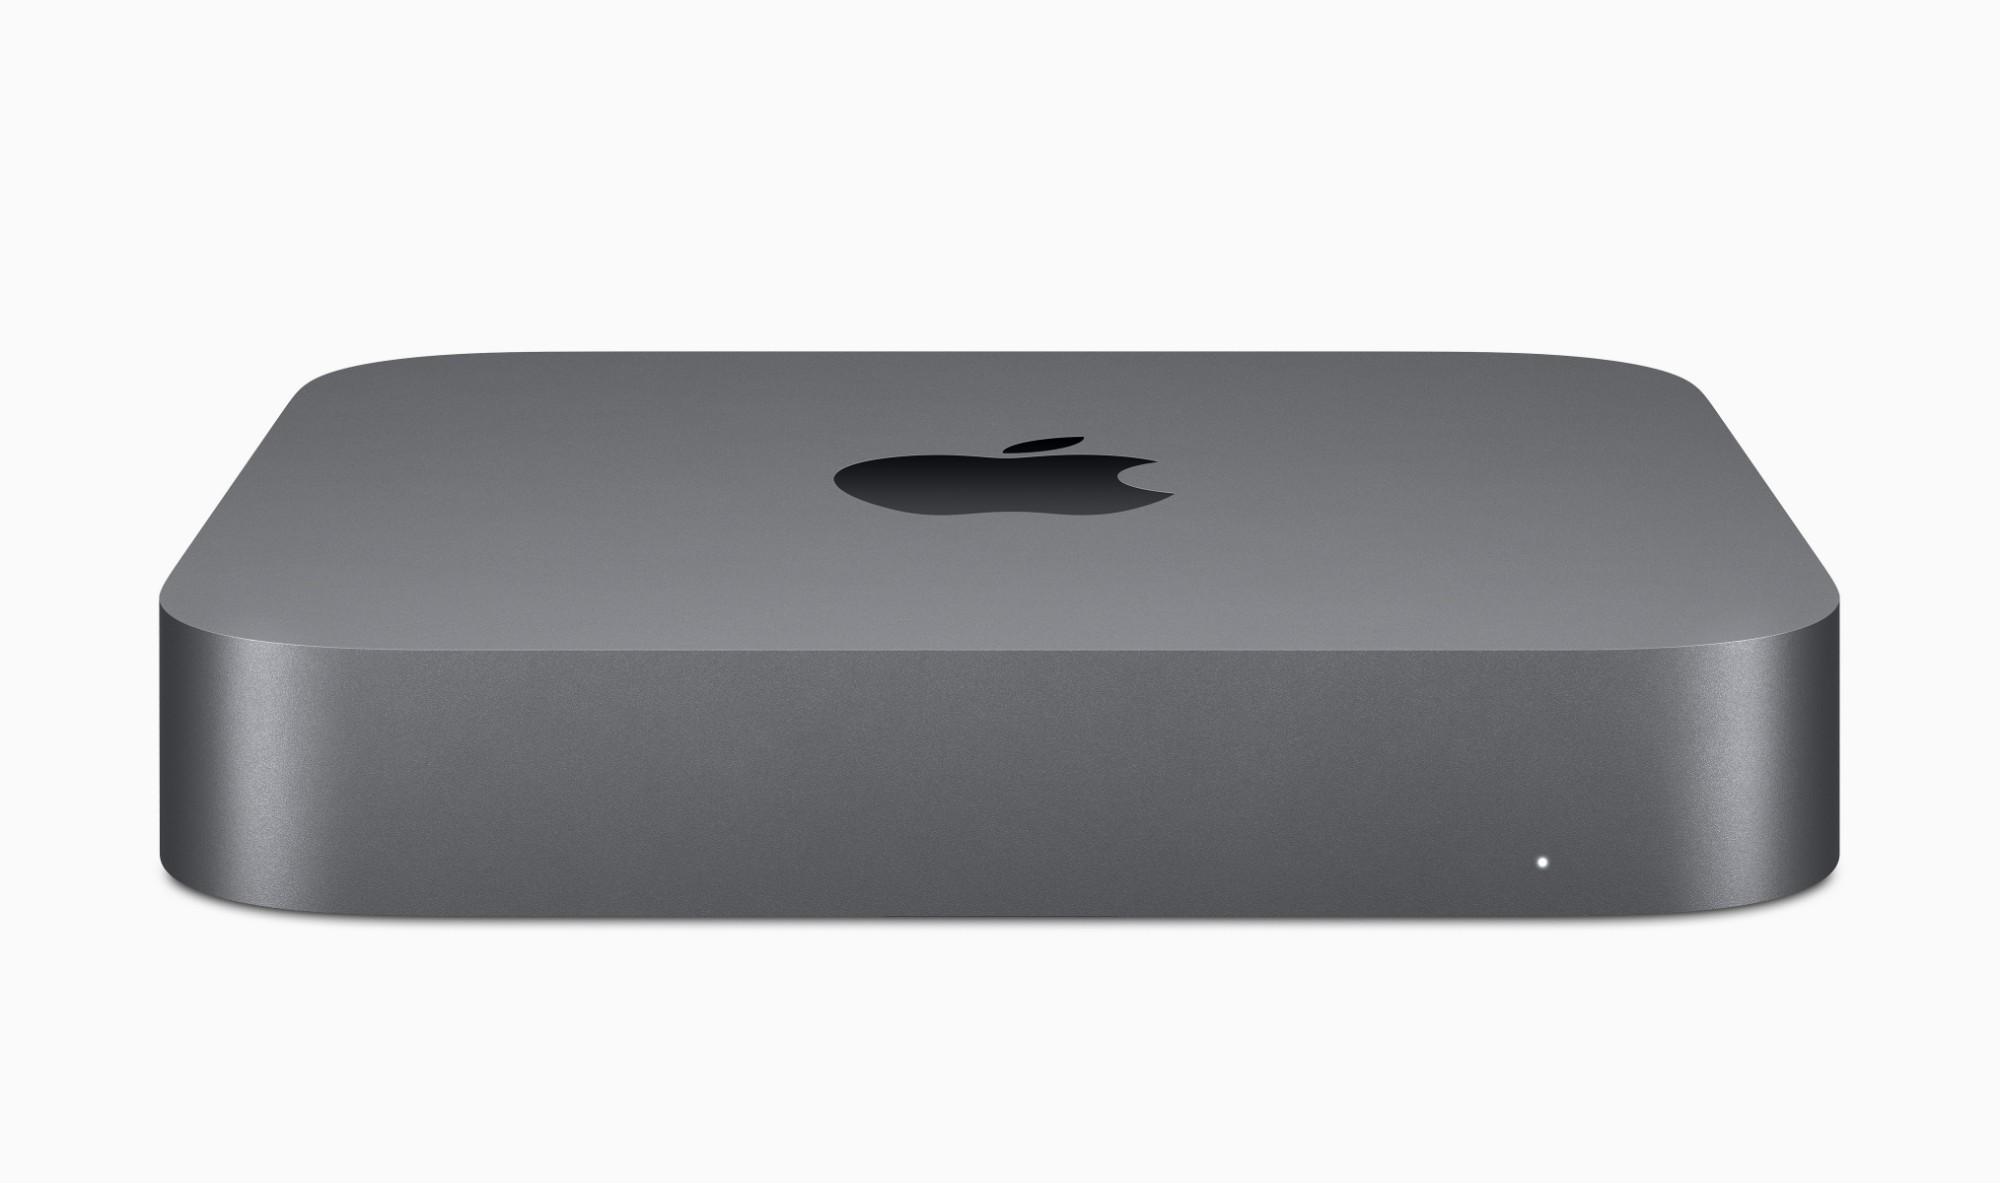 Mac Mini 8g 6ci5 3.0GHz 512GB 8GB Mos In (mxng2b/a)